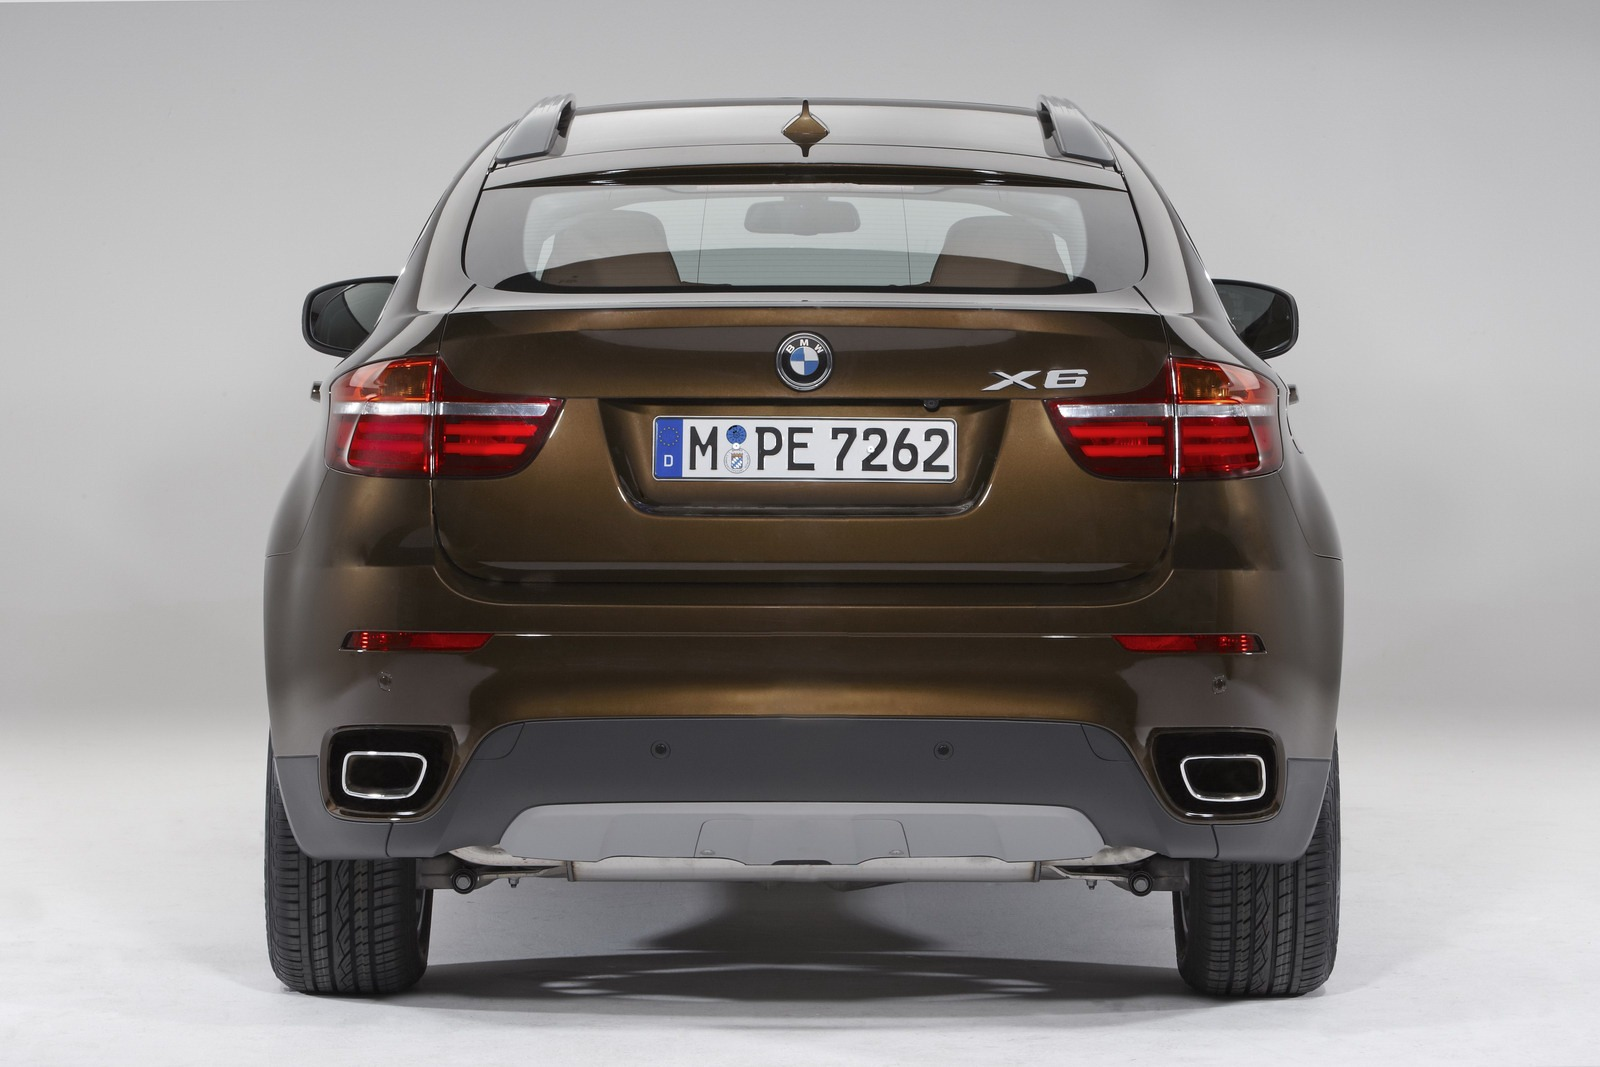 2013 BMW X6 Facelift 3 2013 BMW X6 Facelift   Efficient to Run Fast